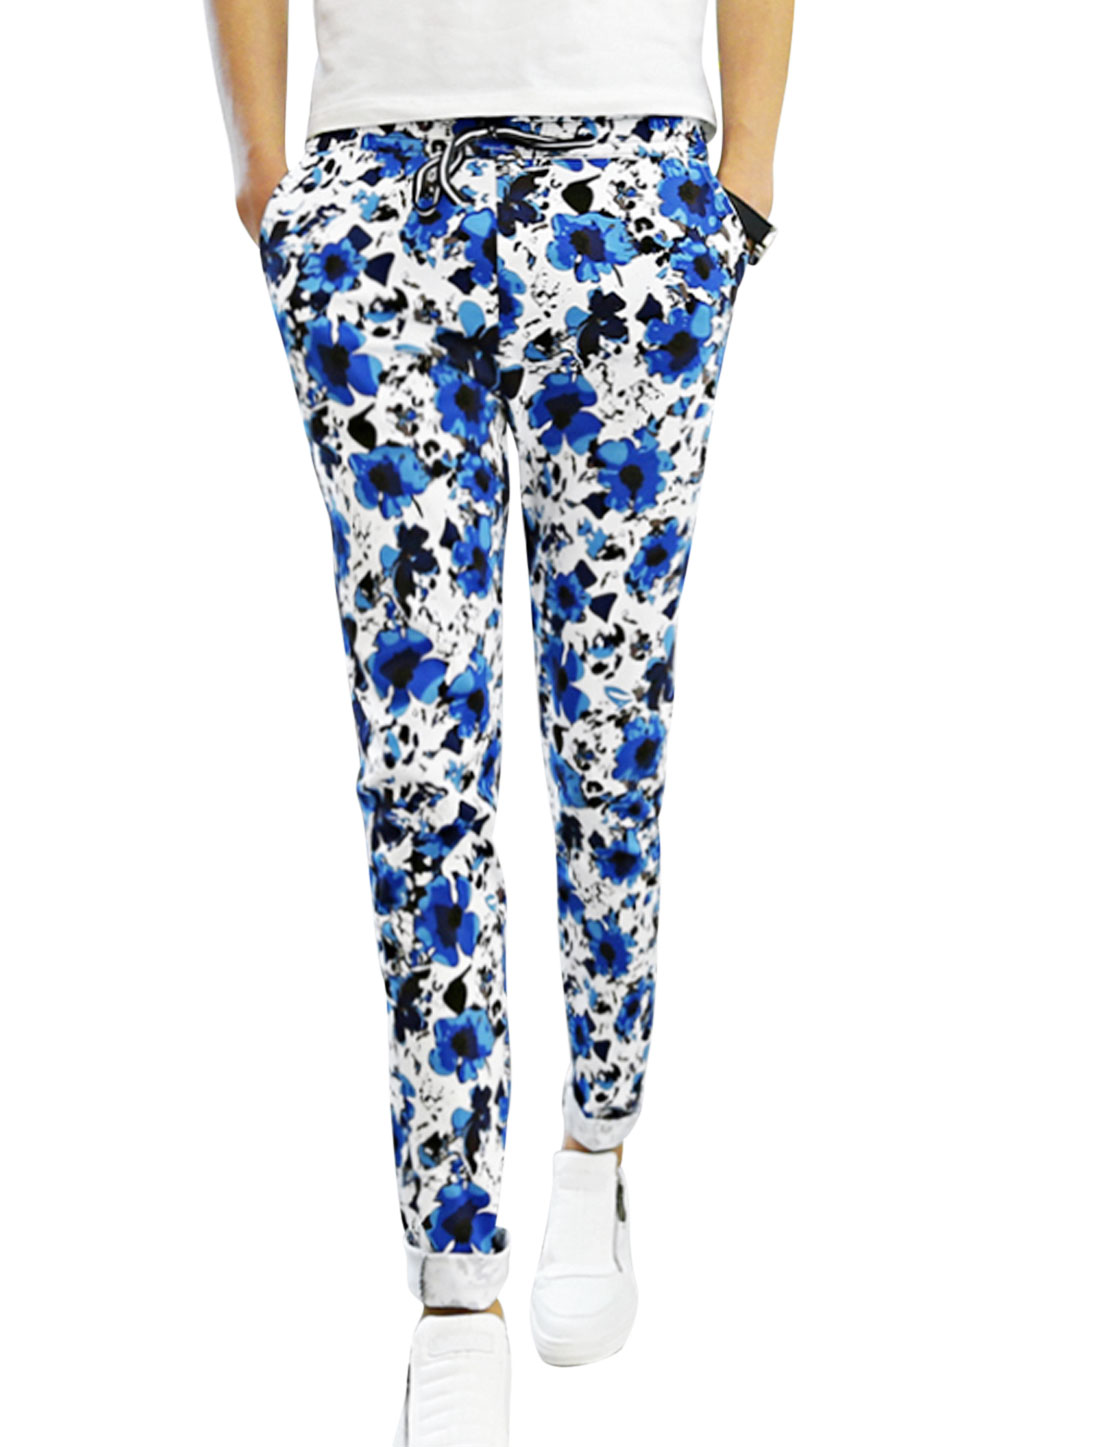 Man Blue White Mid Rise Floral Prints Elastic Waist Drawstring Tapered Pants W28